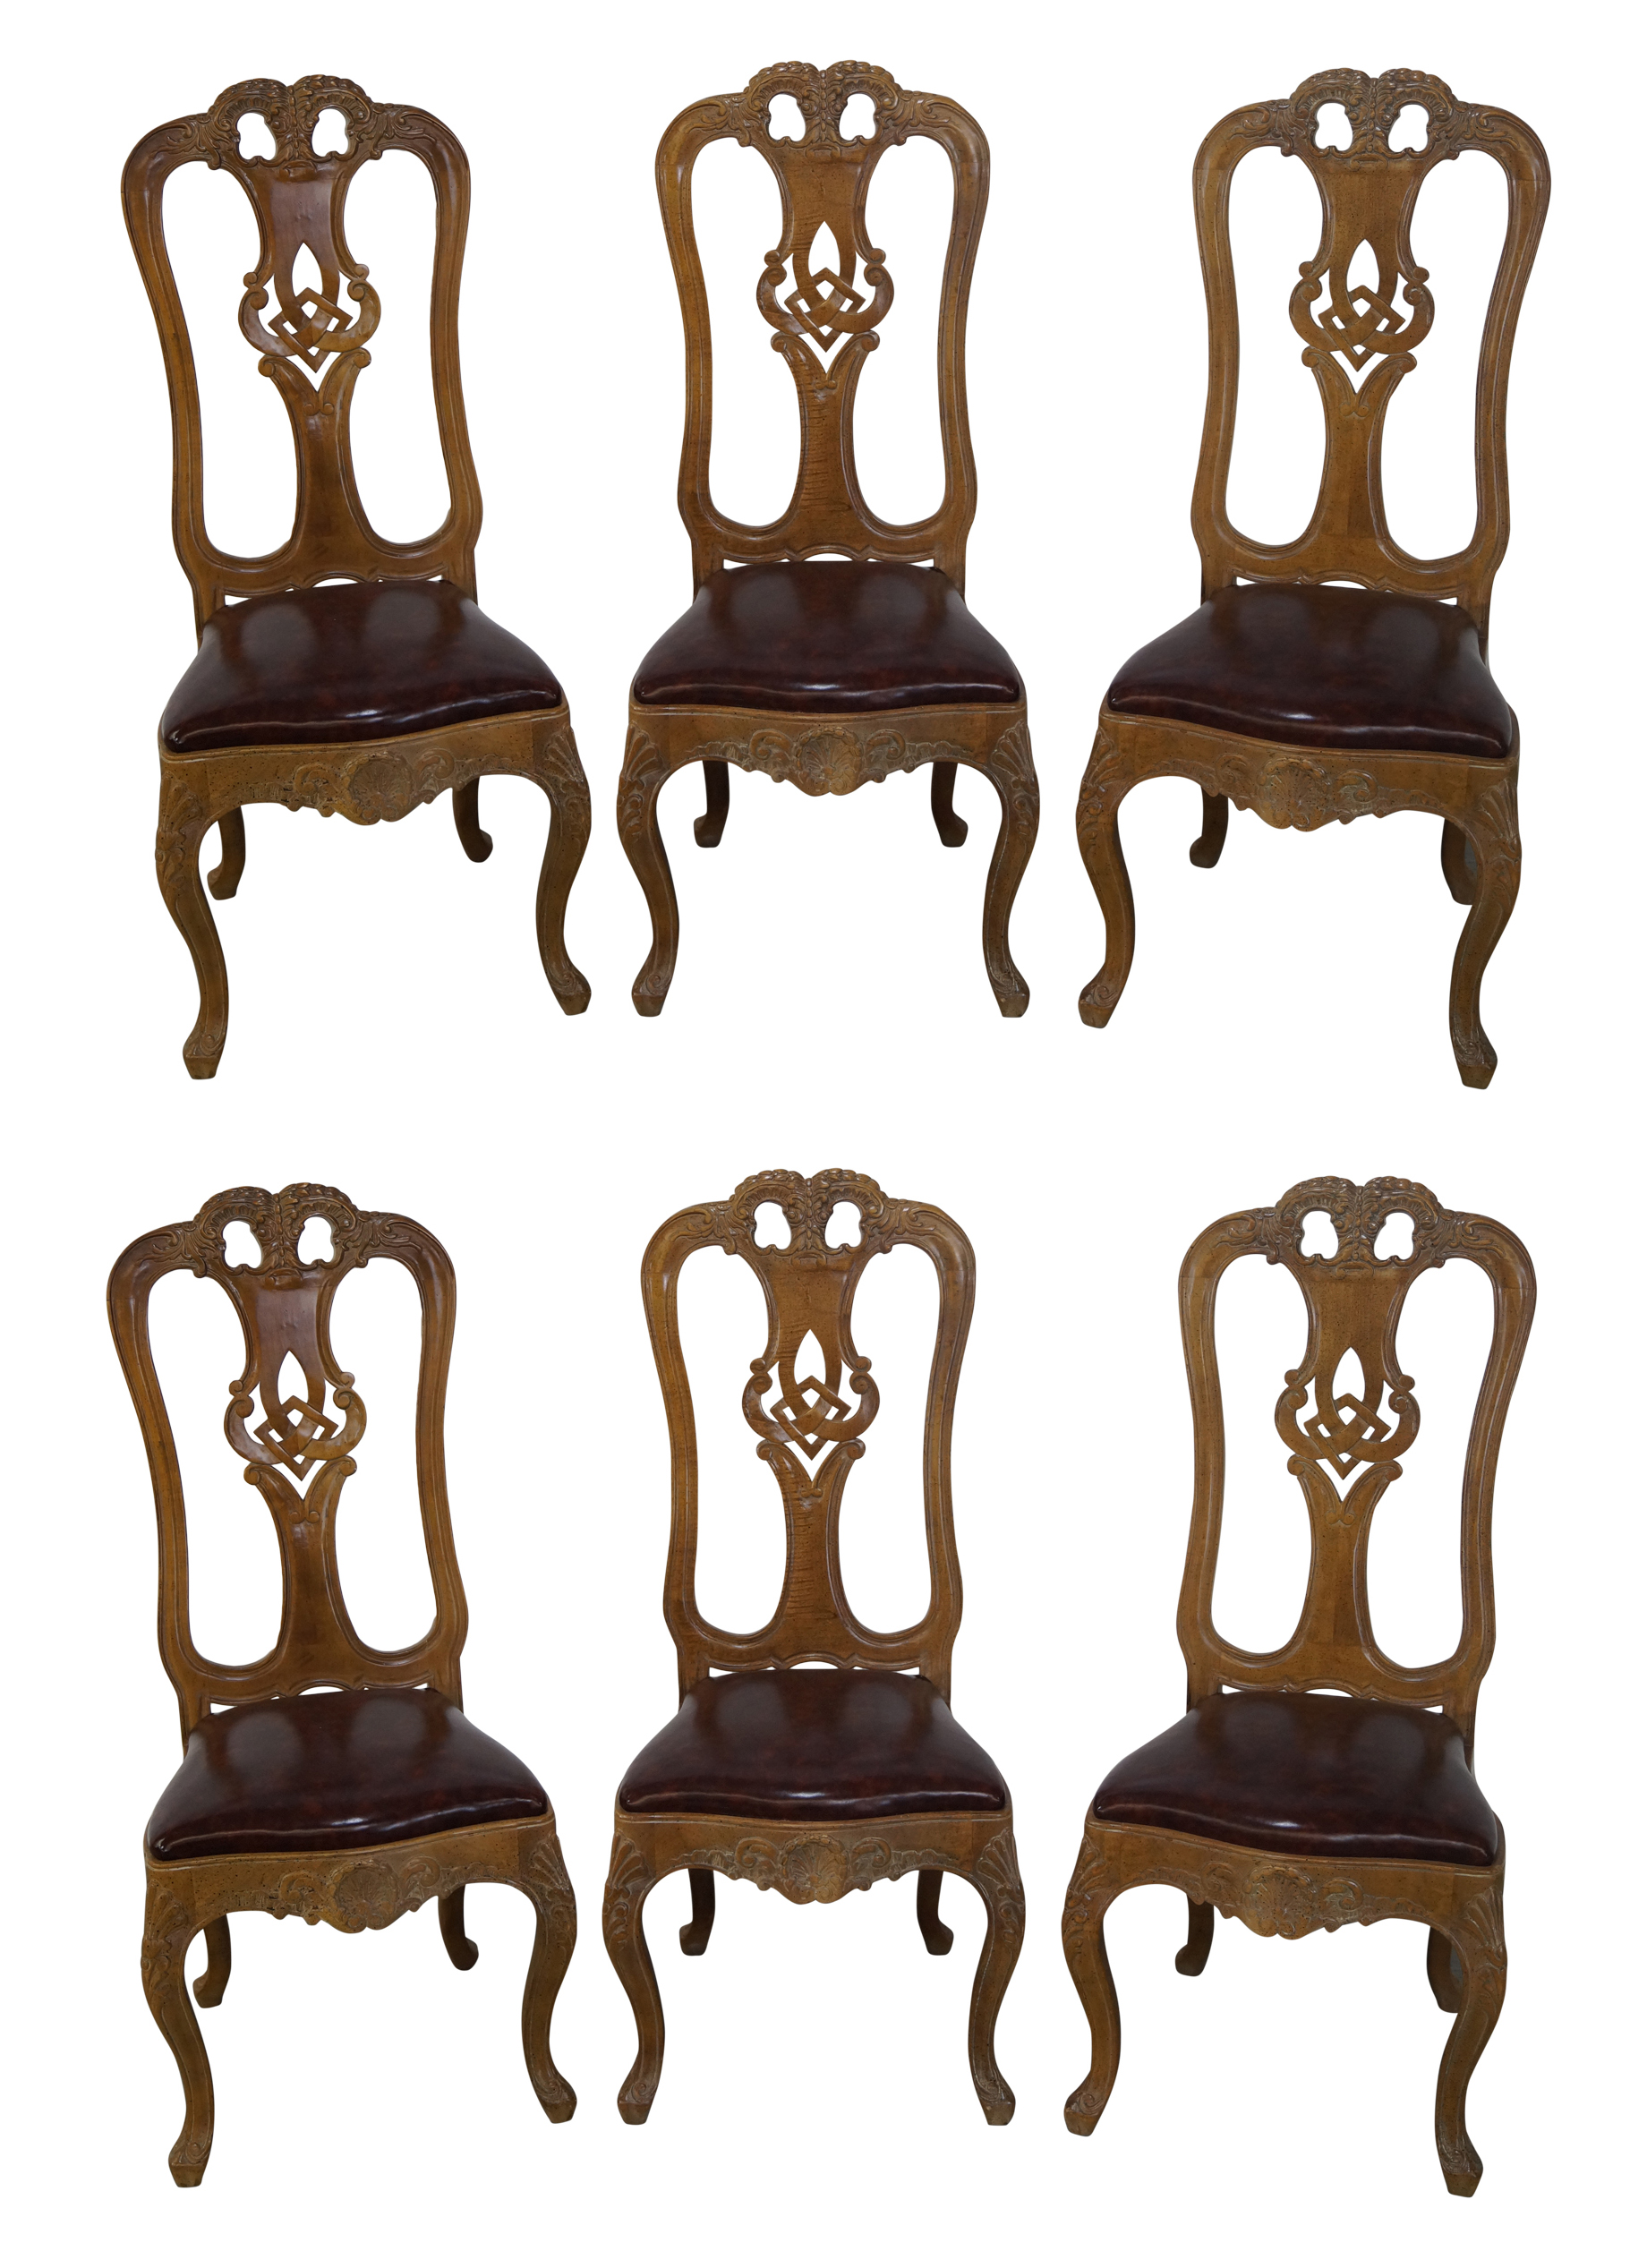 French Style Carved Dining Chairs Set of 6 Chairish : french style carved dining chairs set of 6 7467 from www.chairish.com size 1840 x 2534 png 2612kB